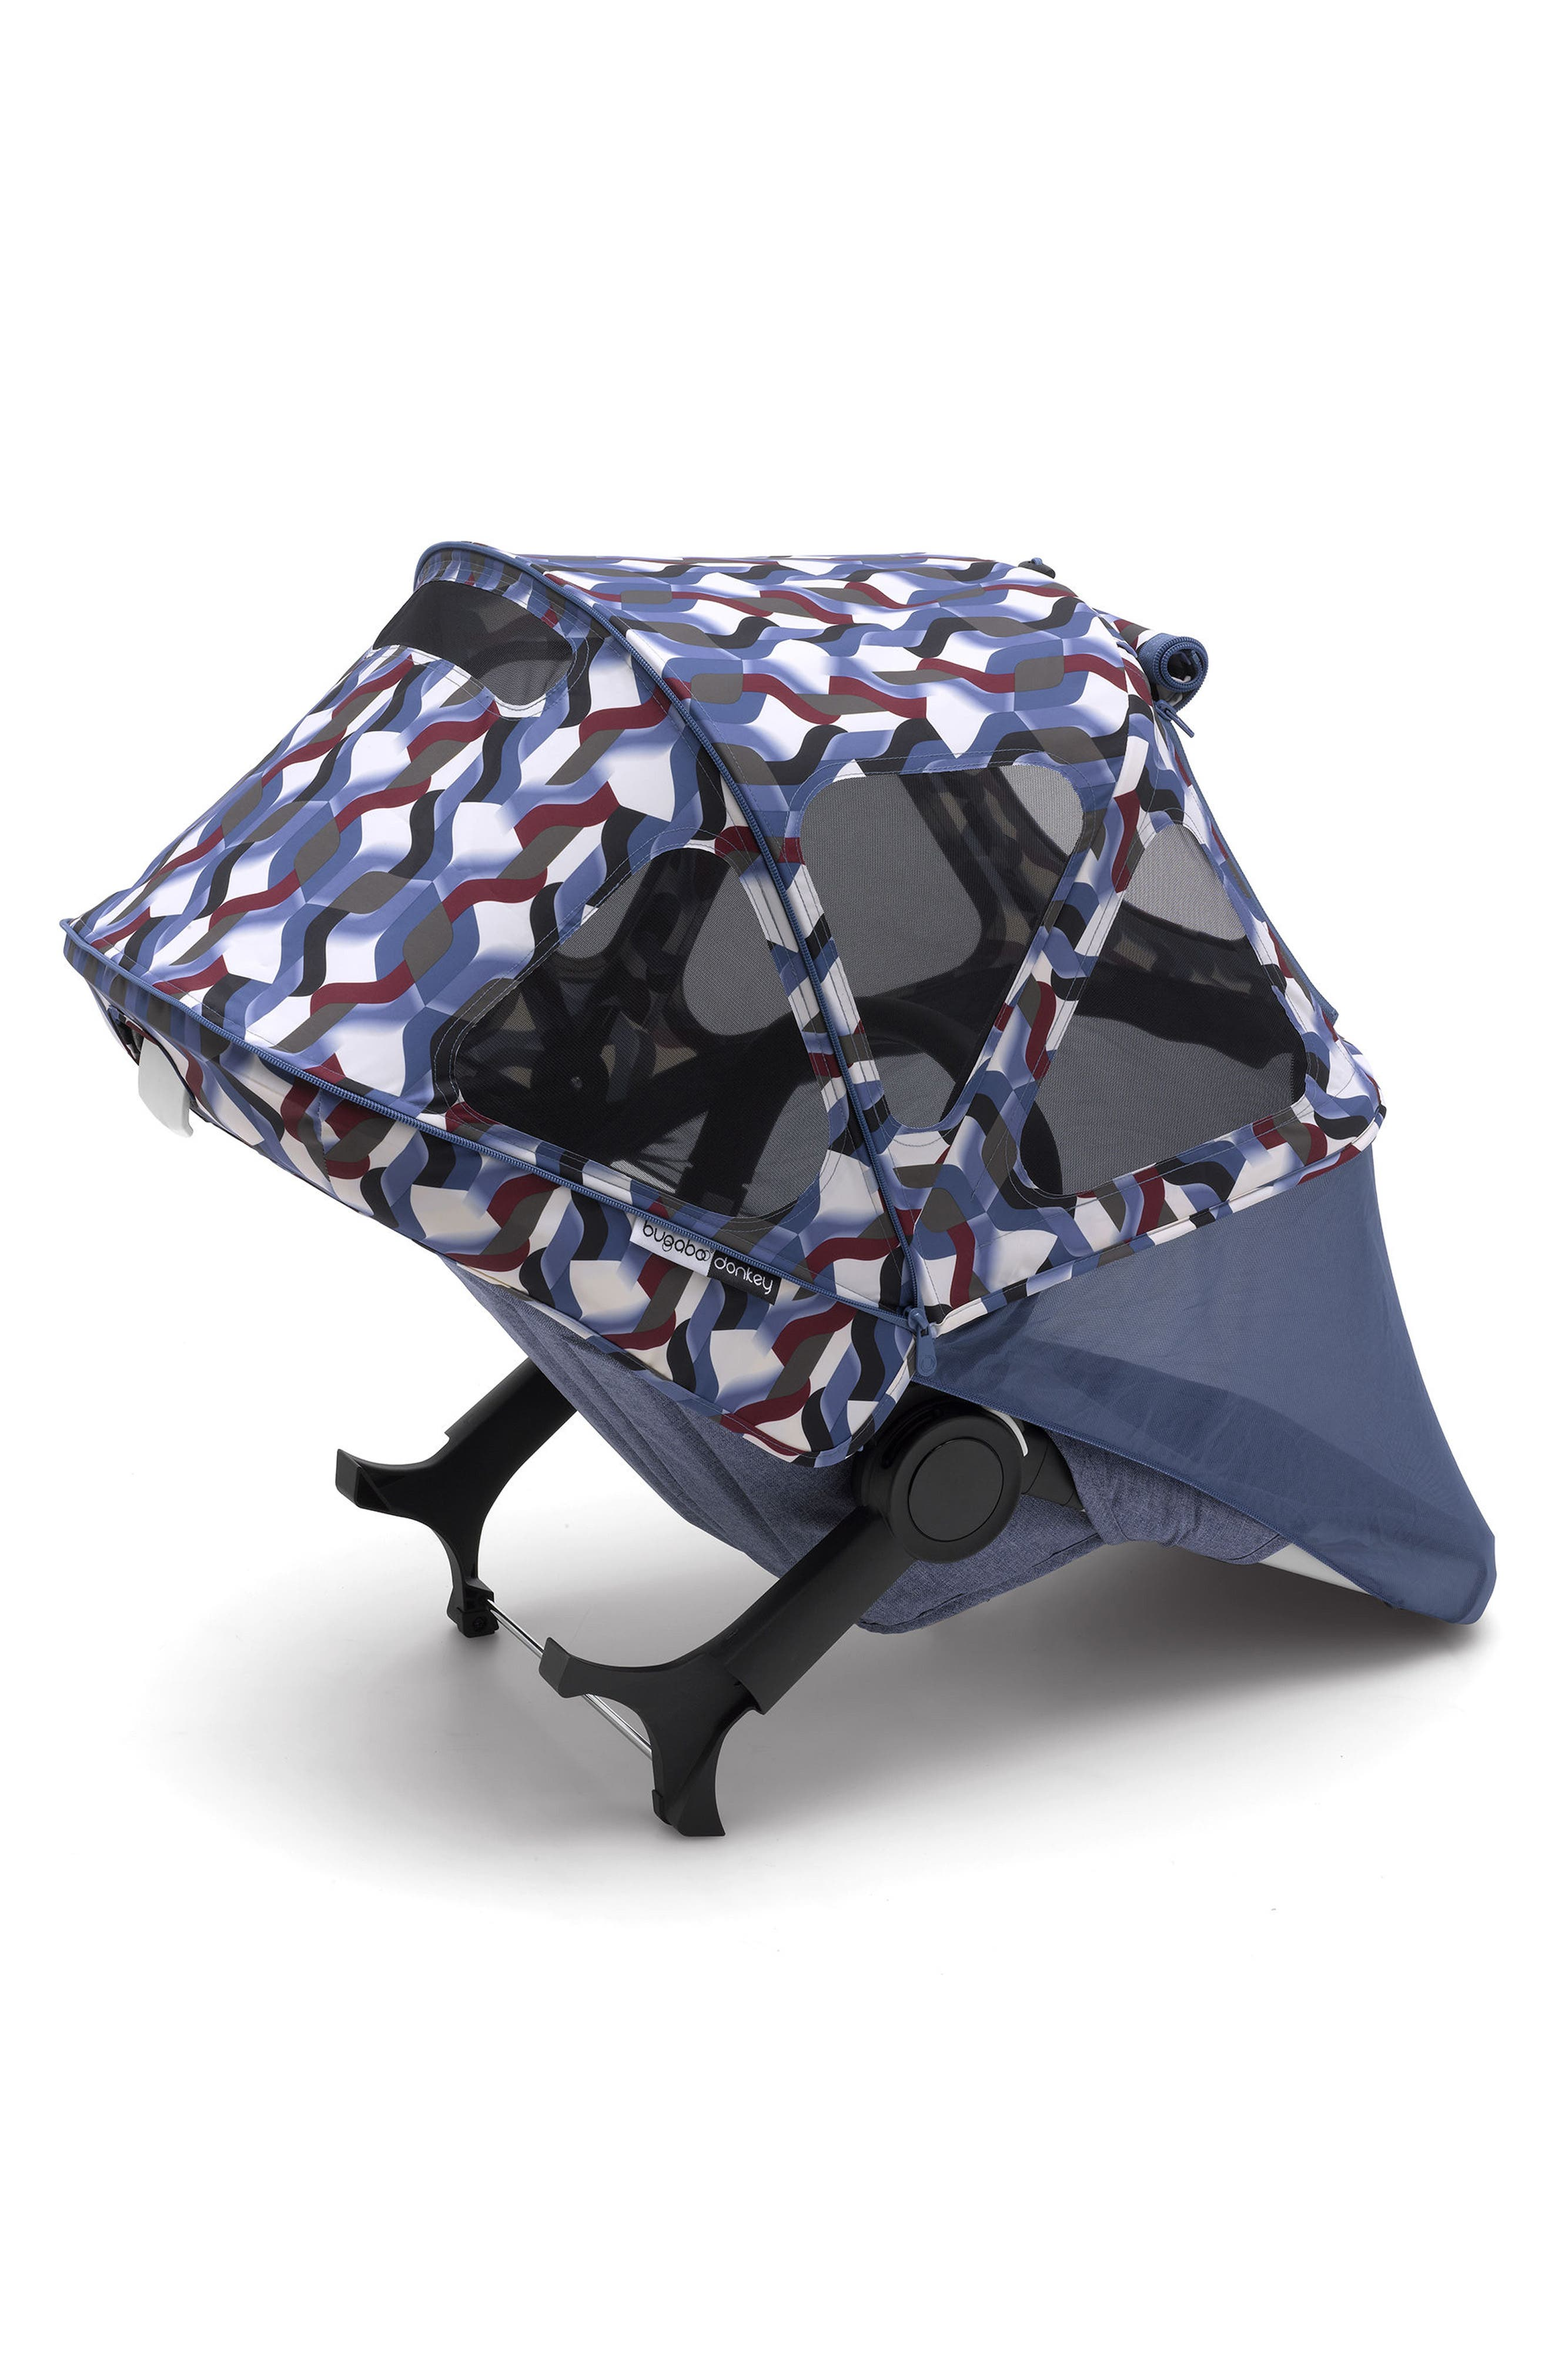 Breezy Framed Sun Canopy for Donkey2 Stroller,                             Main thumbnail 1, color,                             Waves